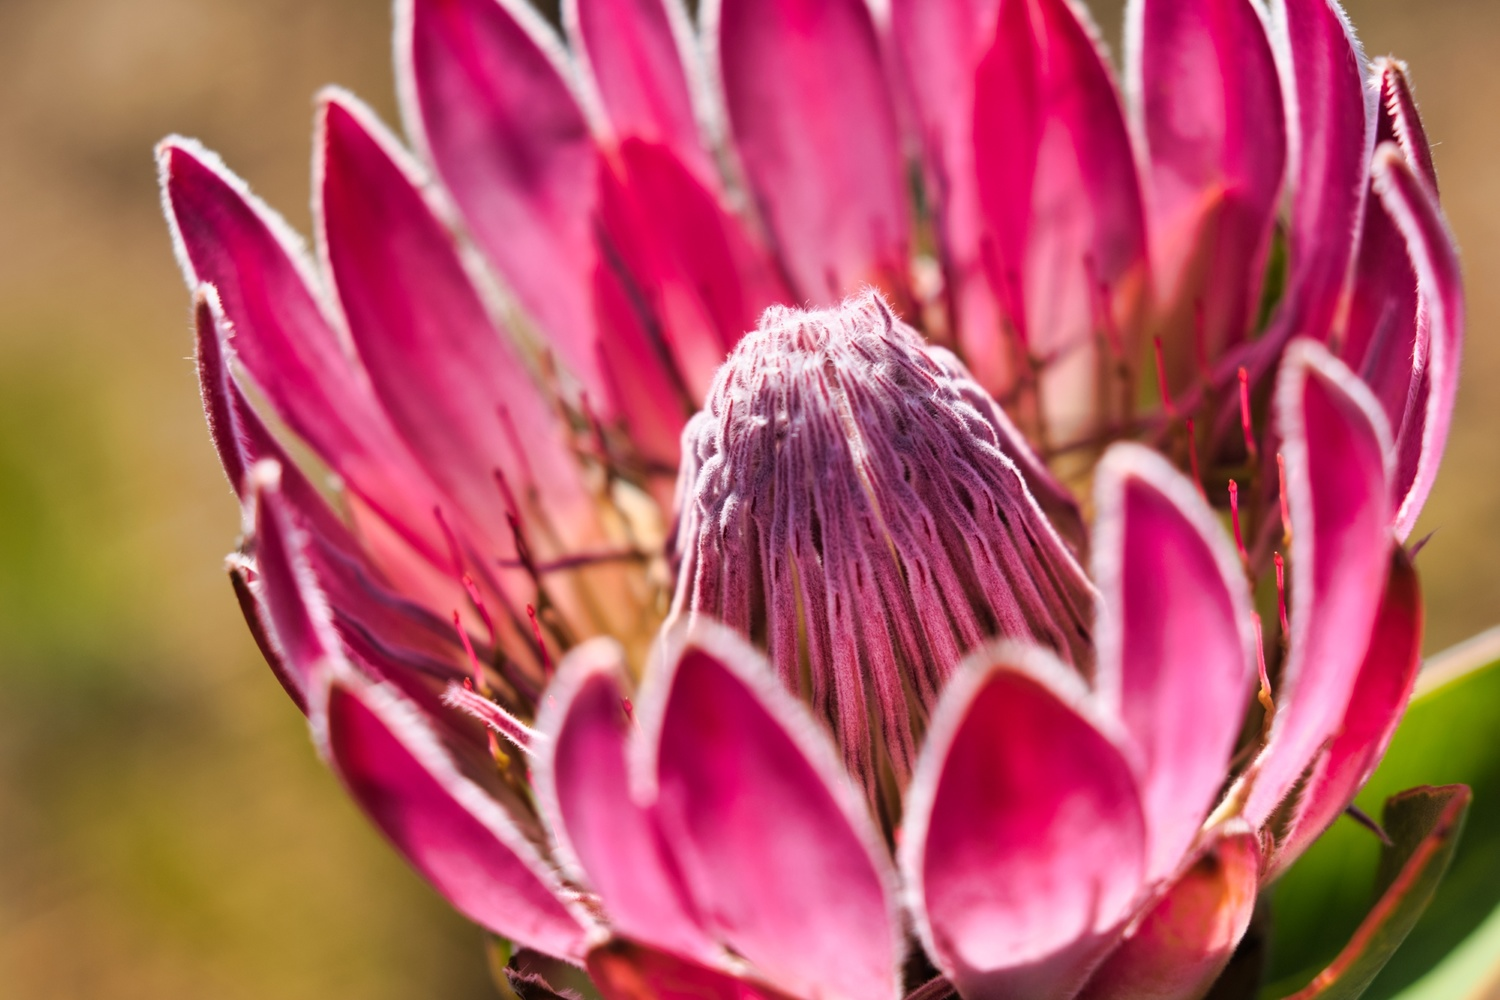 King Protea by Sam Fourie